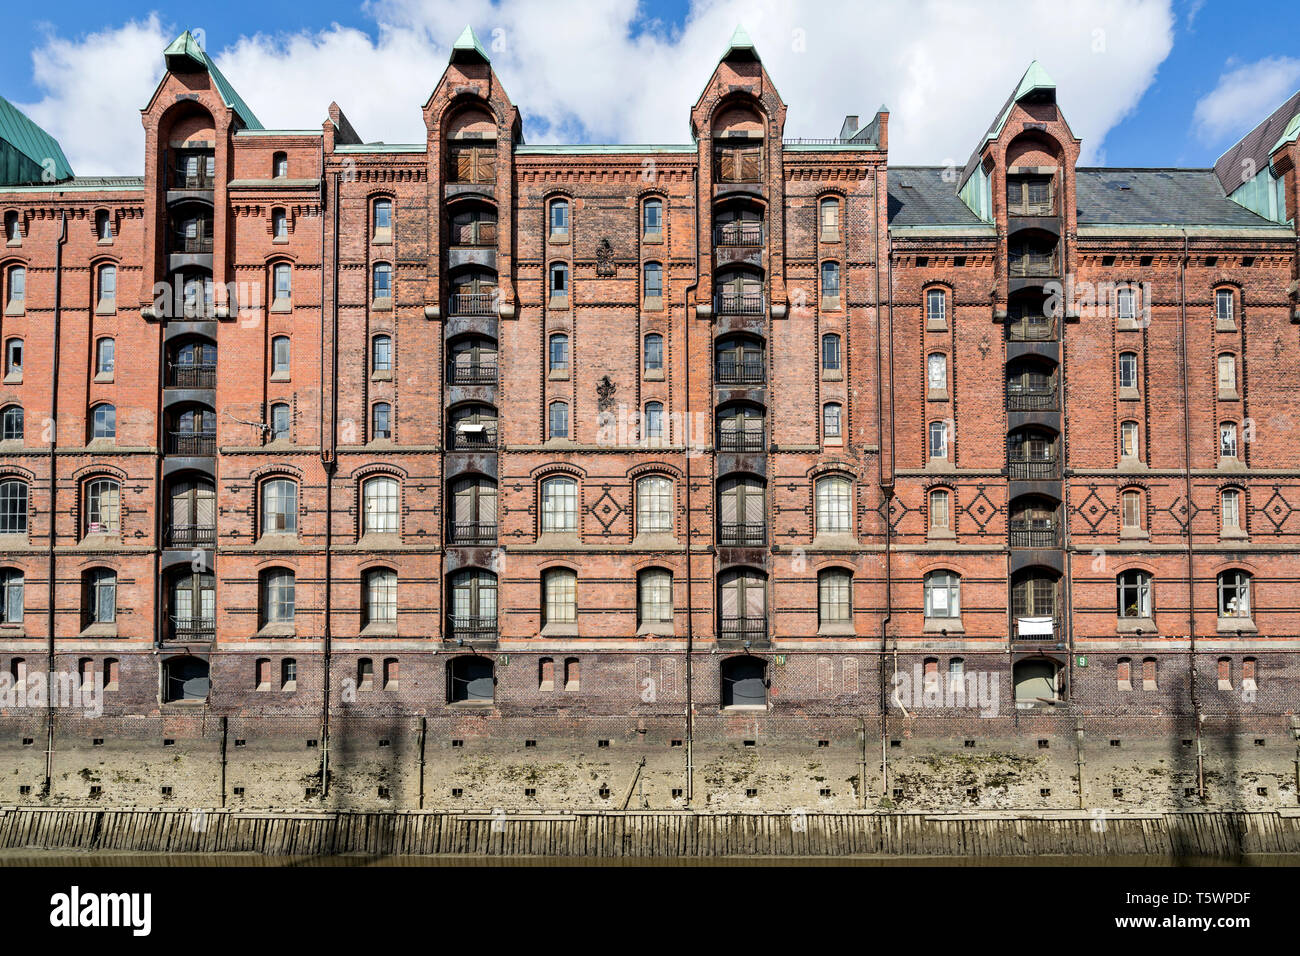 Speicherstadt in Hamburg, Germany. It is the largest warehouse district in the world where the buildings stand on timber-pile foundations. Stock Photo